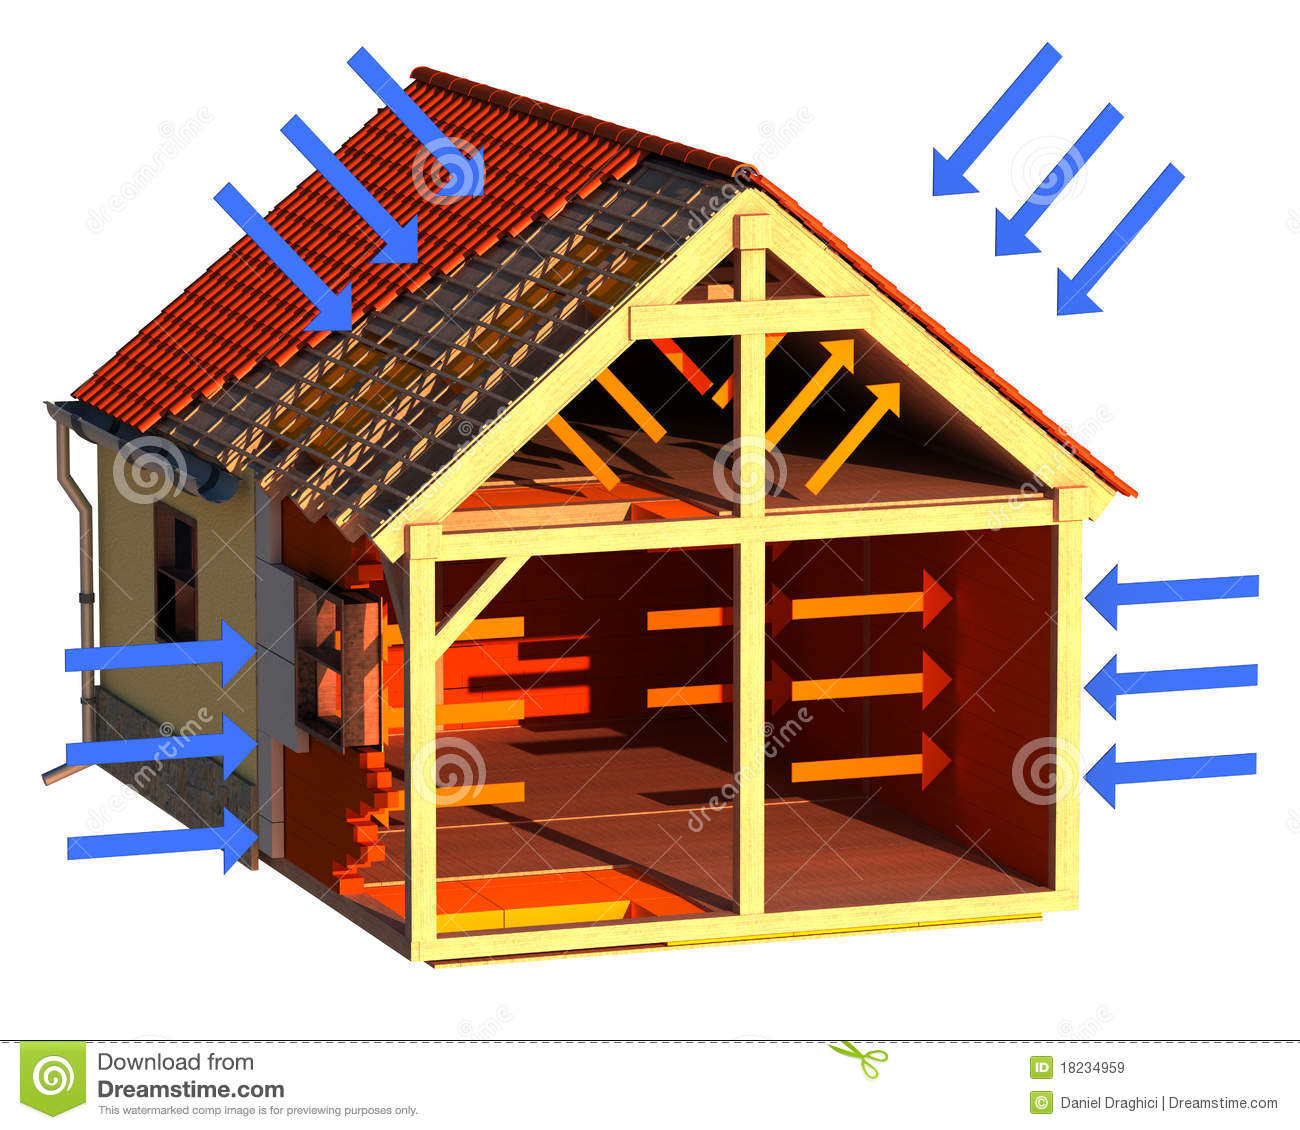 House insulation royalty free stock images image 18234959 - Advice on insulating your home ...